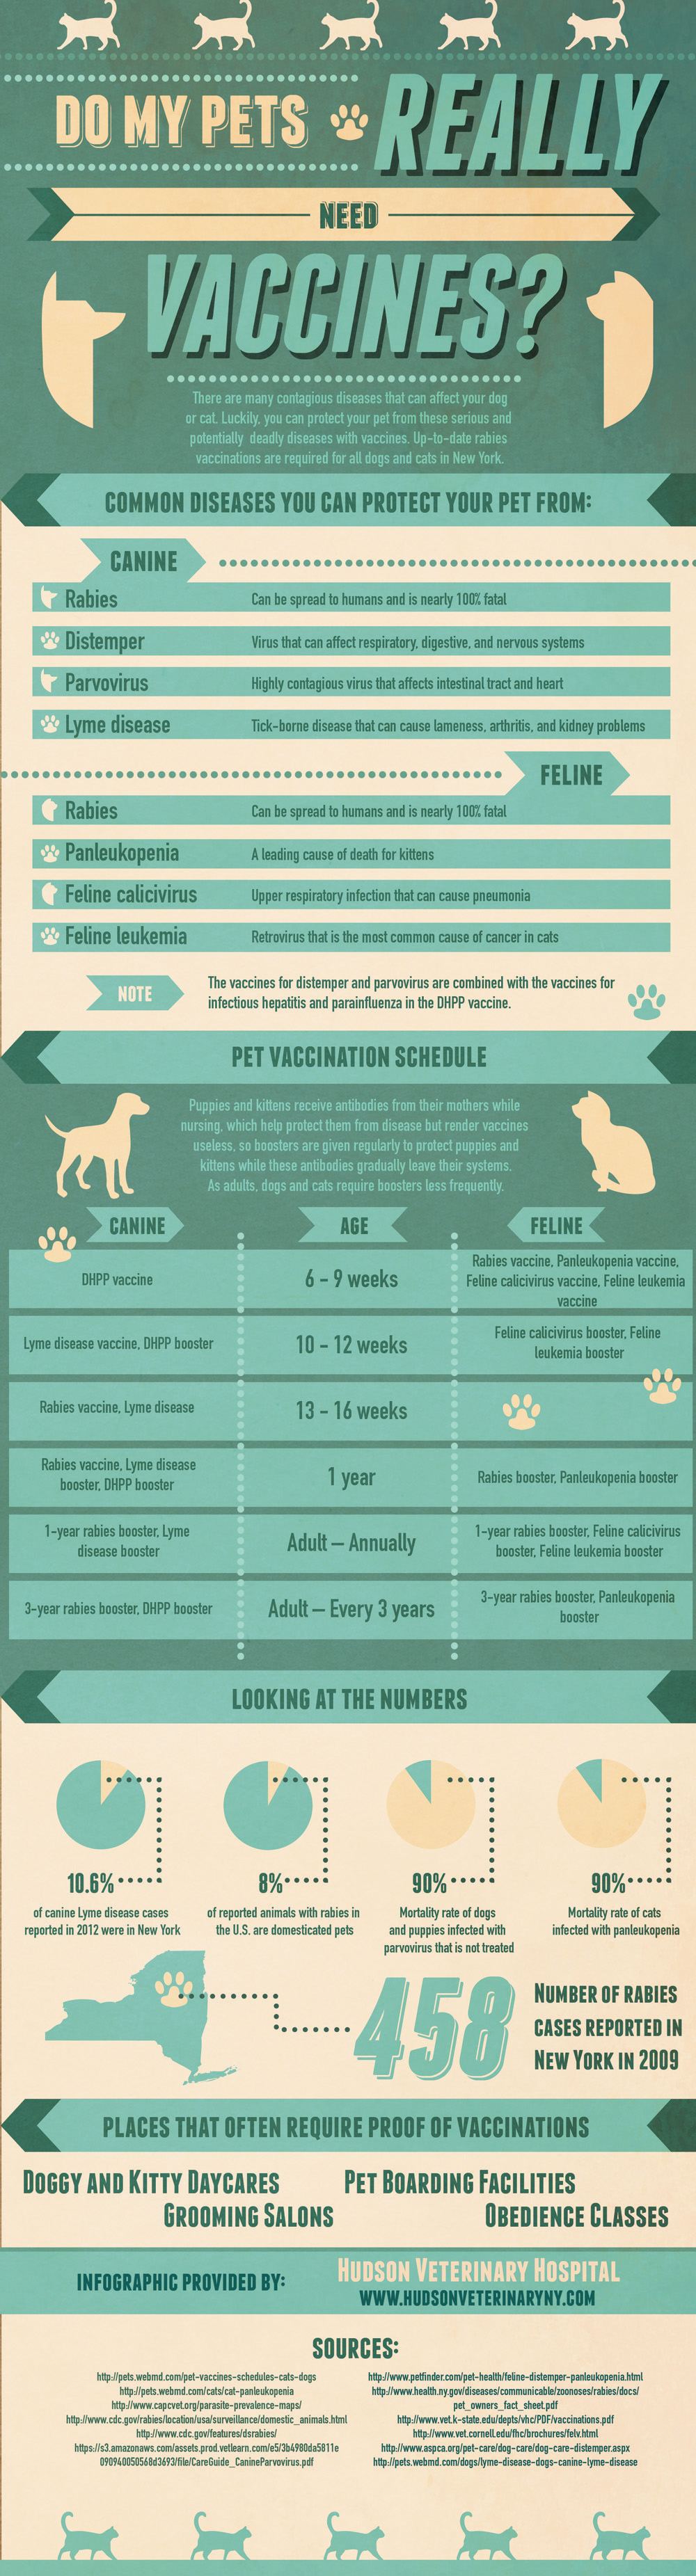 Do My Pets Really Need Vaccinations?